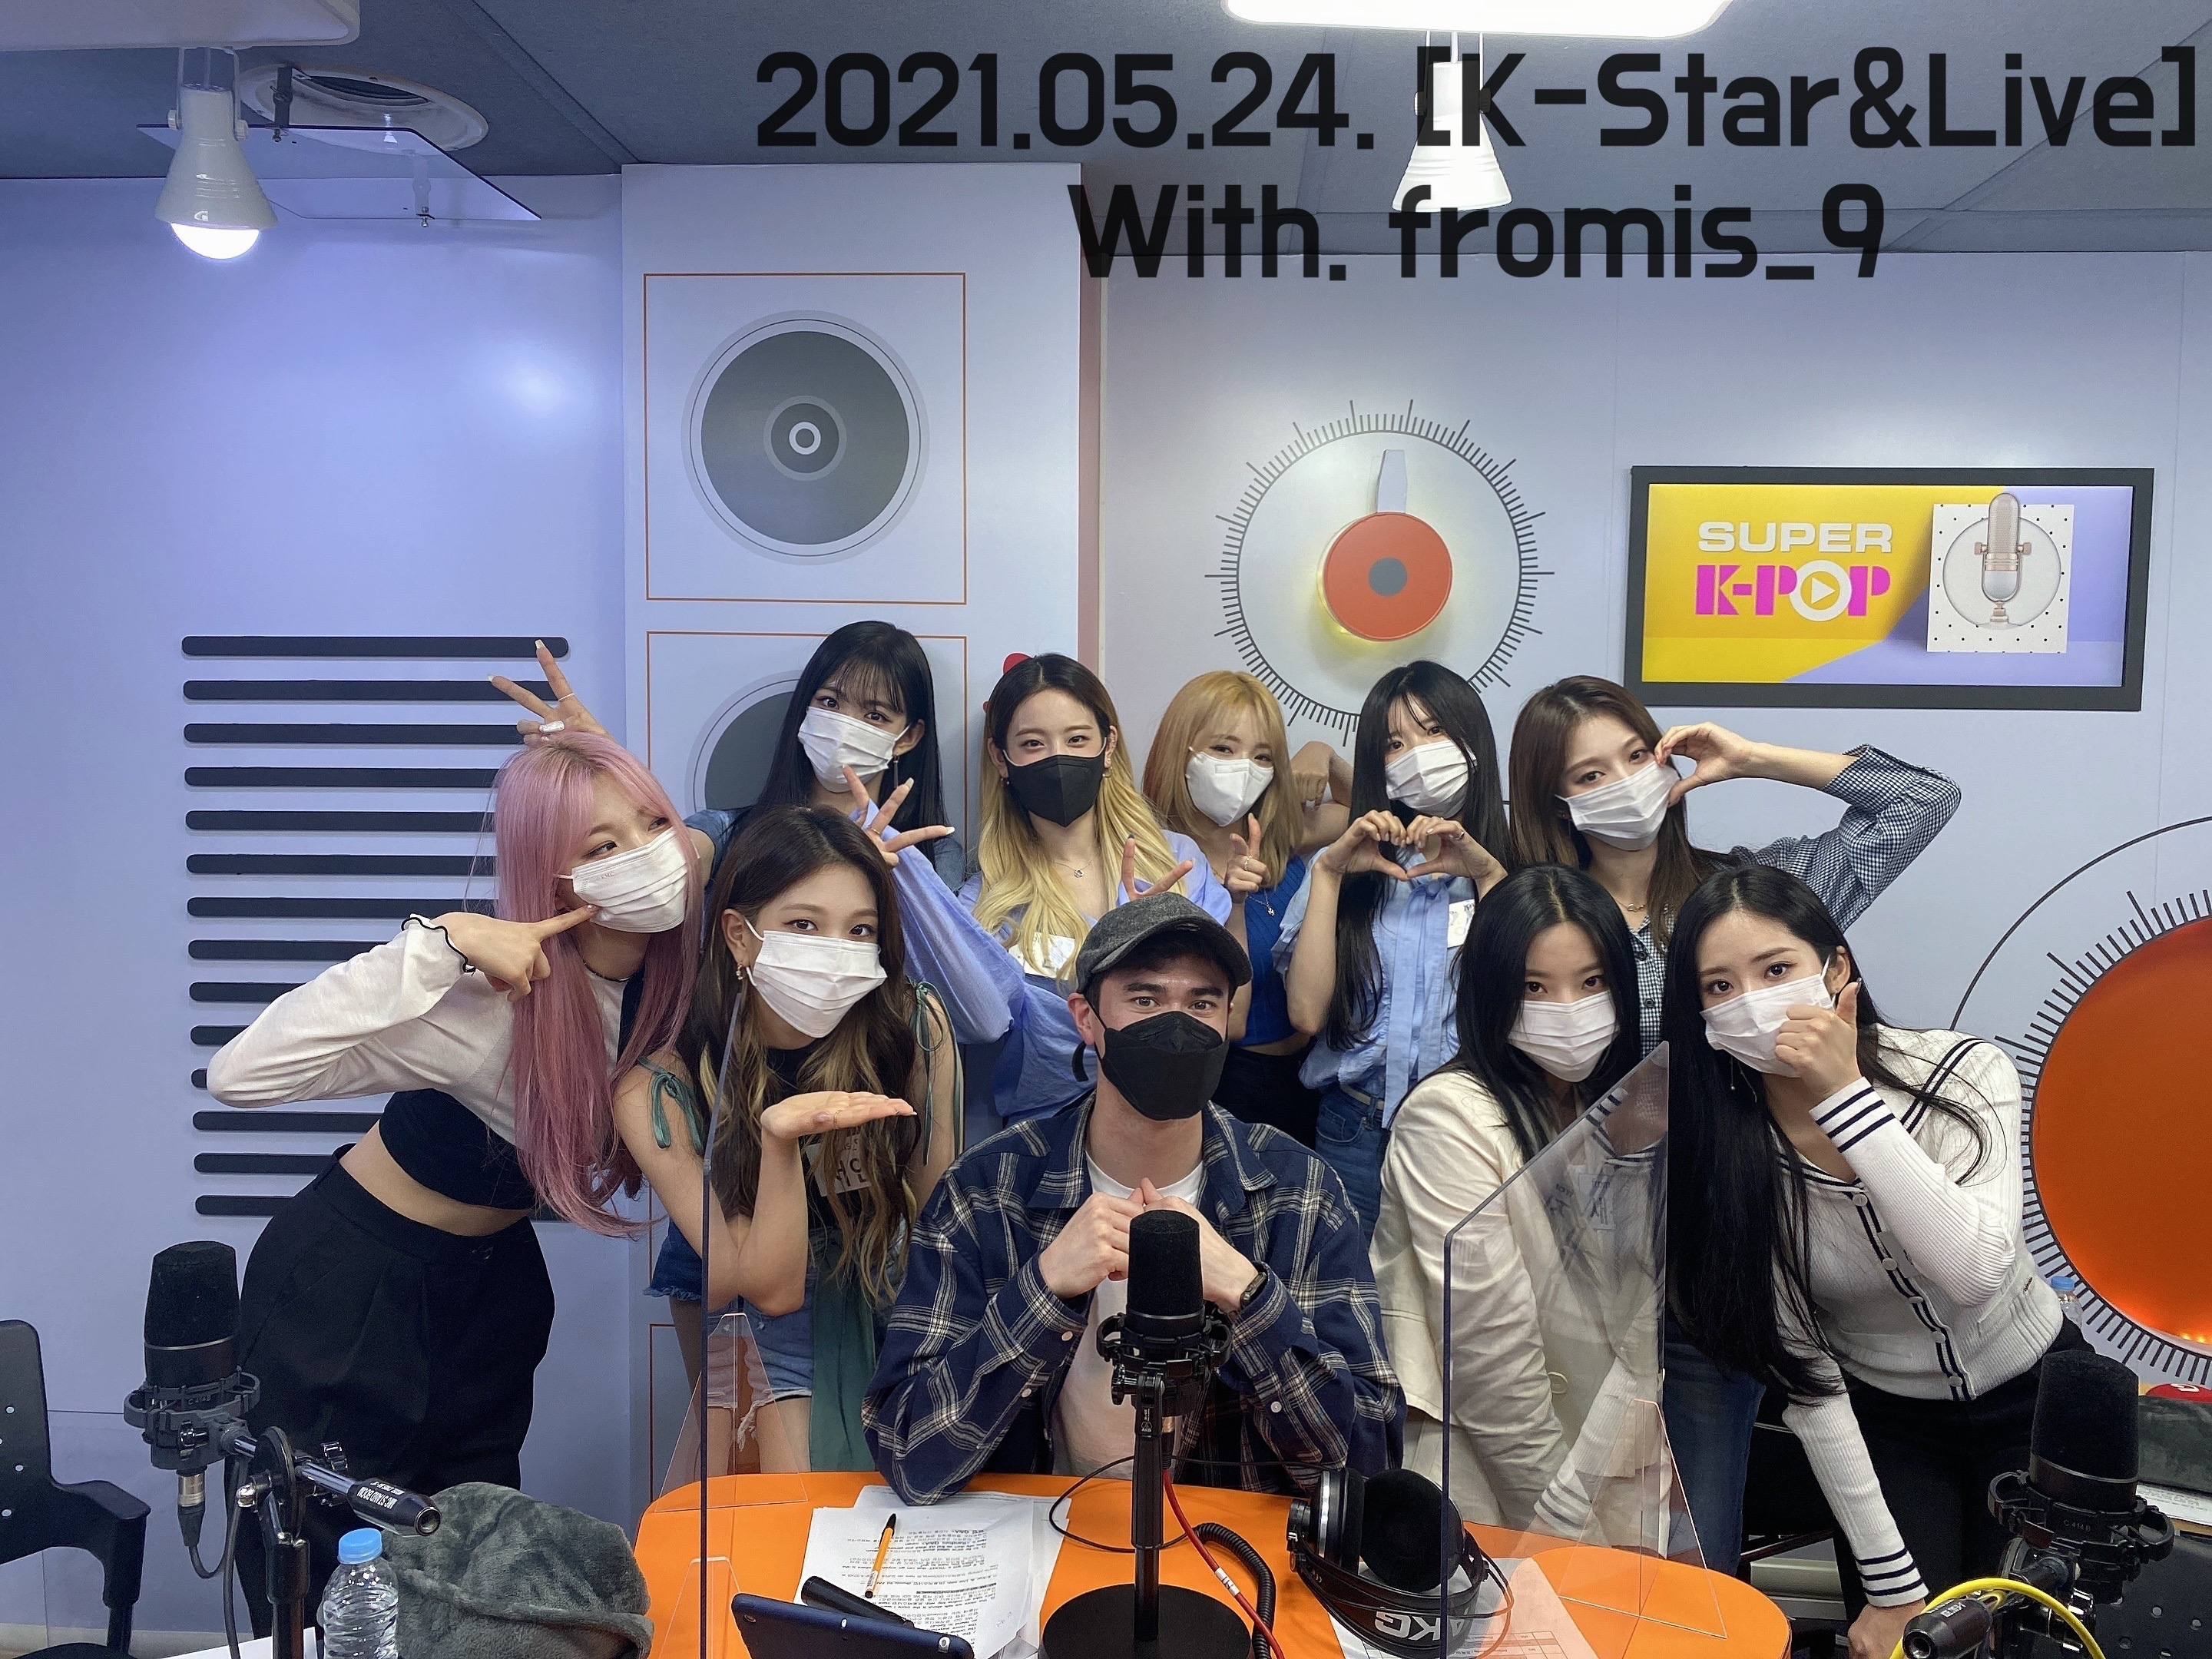 K-star & Live : fromis_9